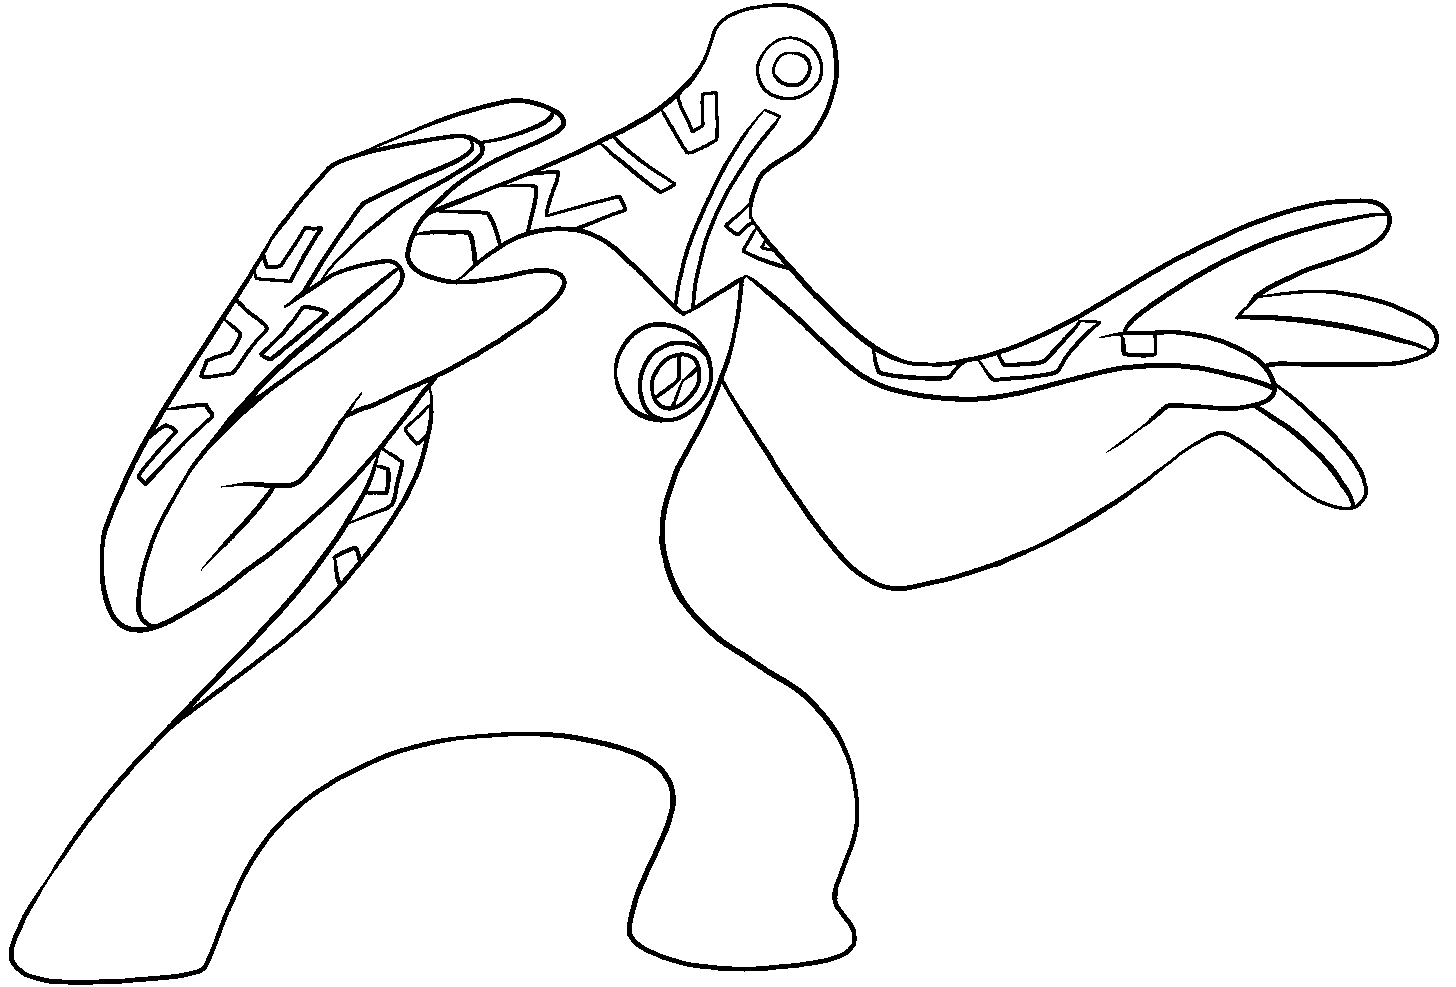 xlr8 coloring pages - photo#41